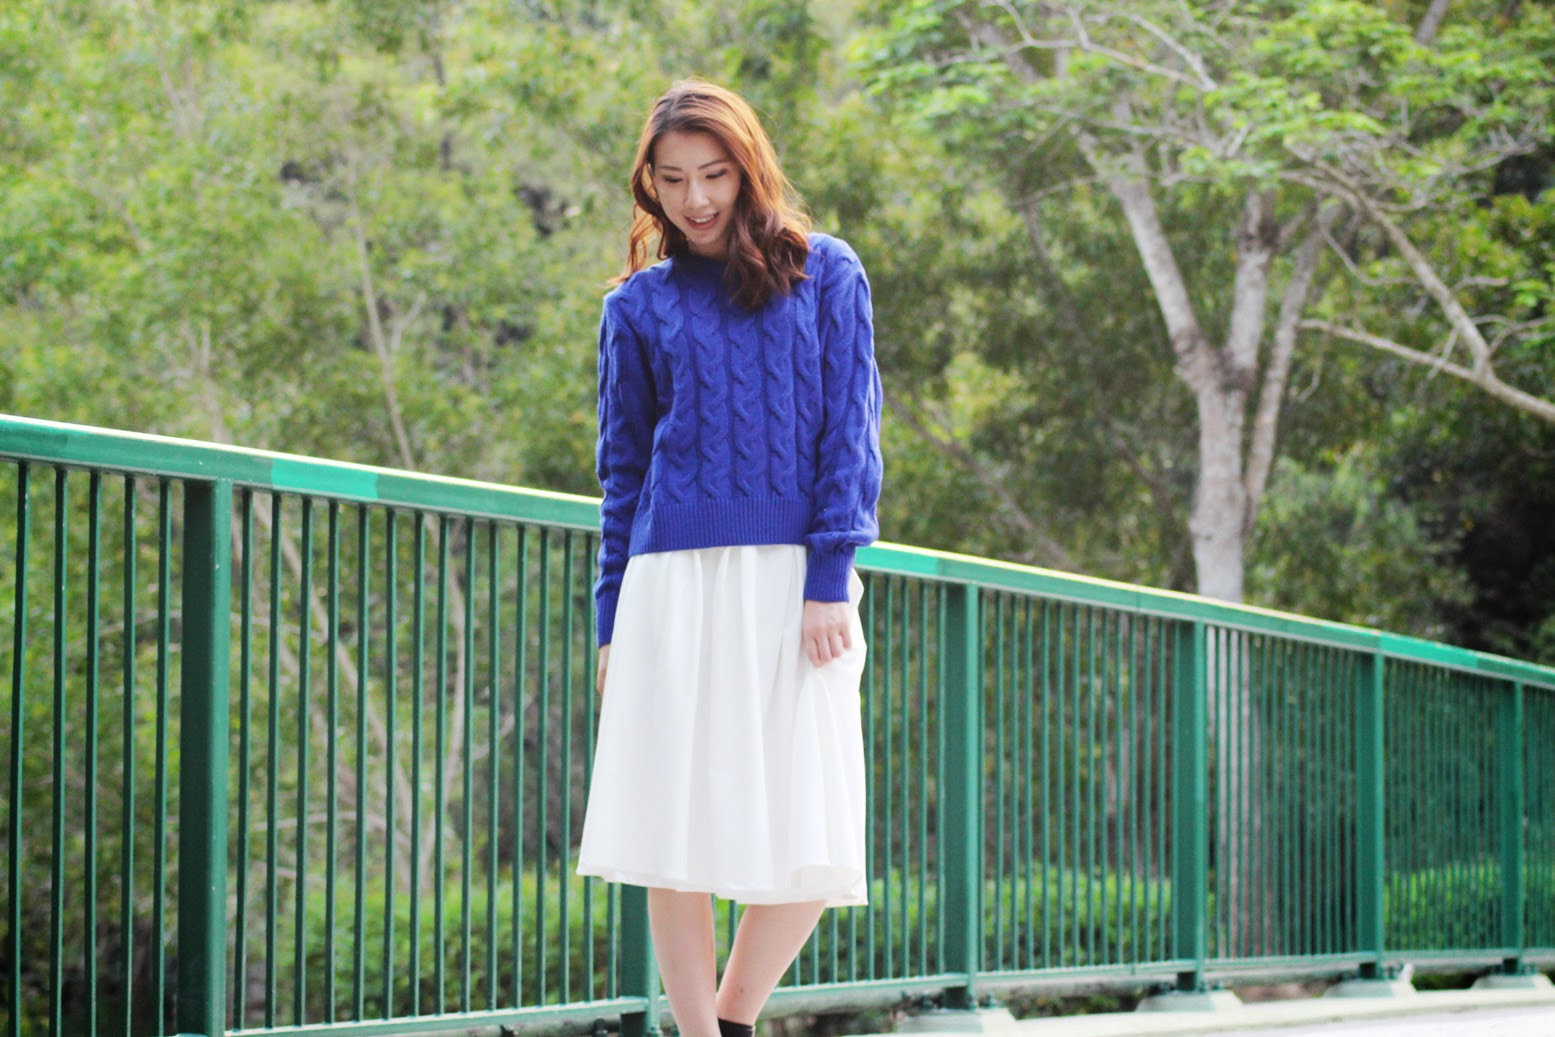 Styling blue sweater with flared white midi skirt